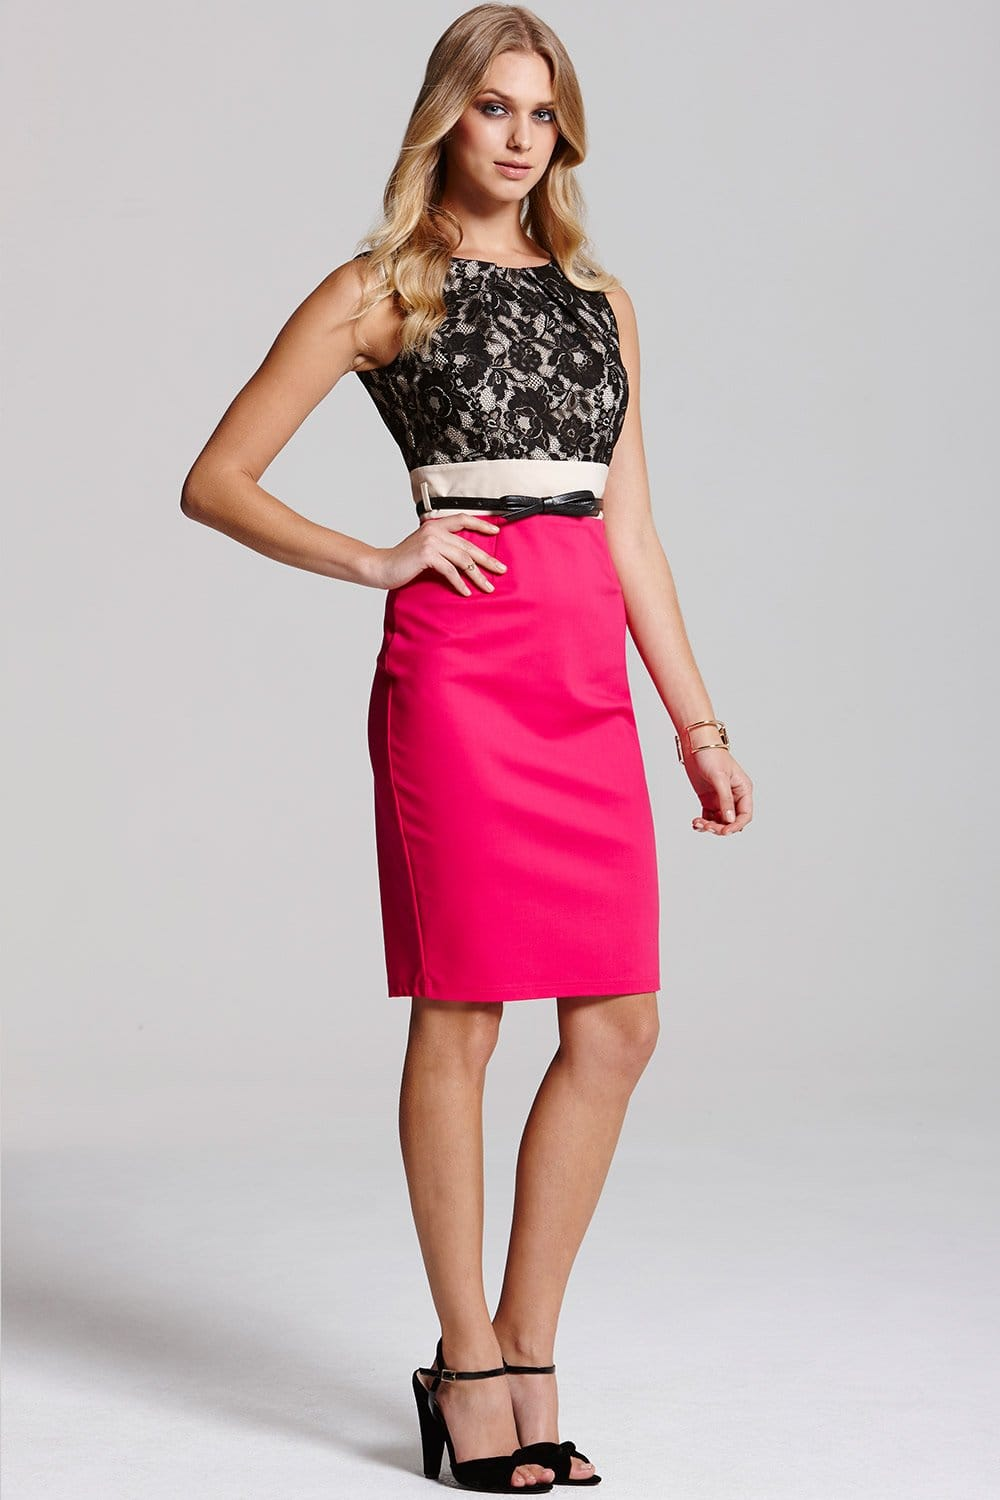 Outlet Paper Dolls Pink and Black Lace Contrast Dress - Outlet ...